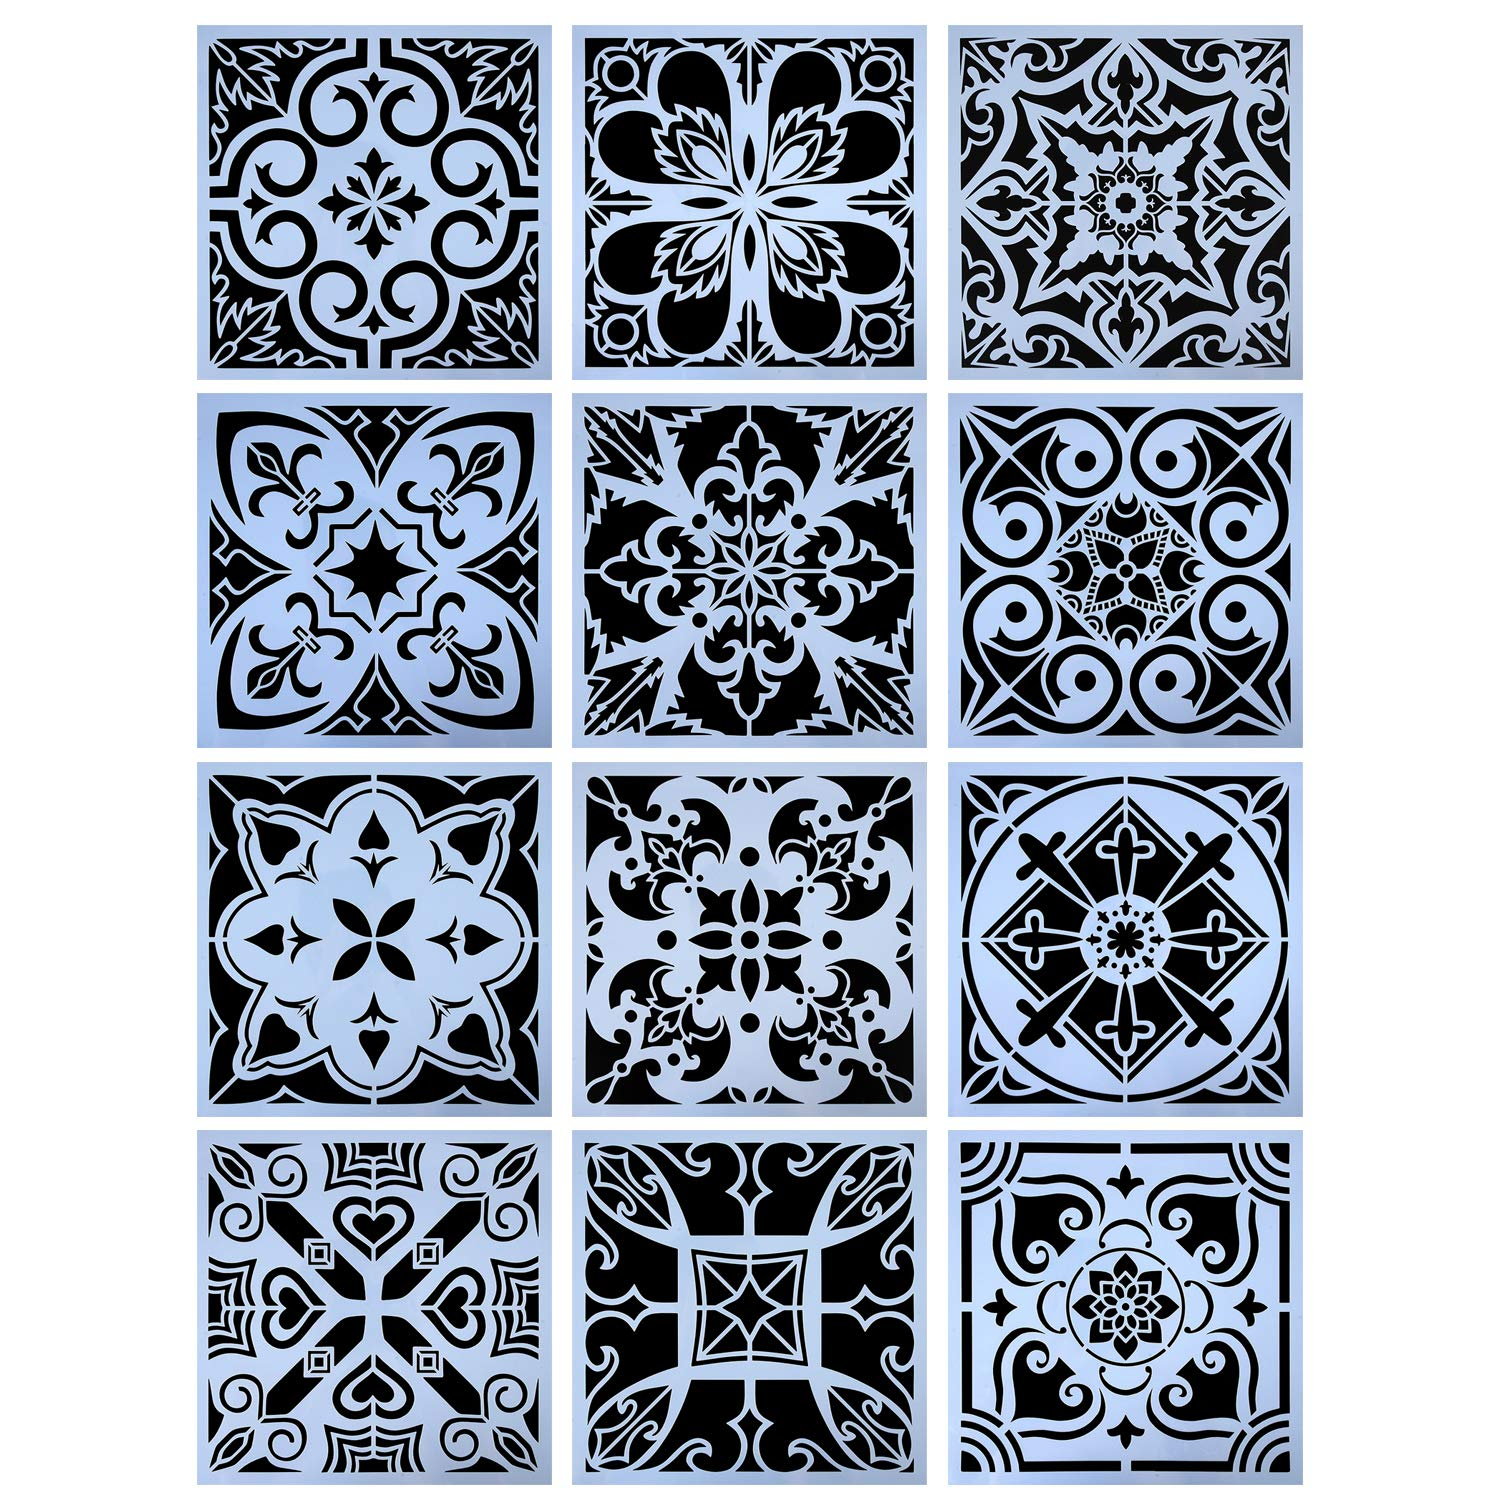 YUEAON 12-Pack (12x12Inch) Painting Stencils for Floor Wall Tile Fabric Furniture Wood Burning Art&Craft Supplies Mandala Template-reuseable by YUEAON